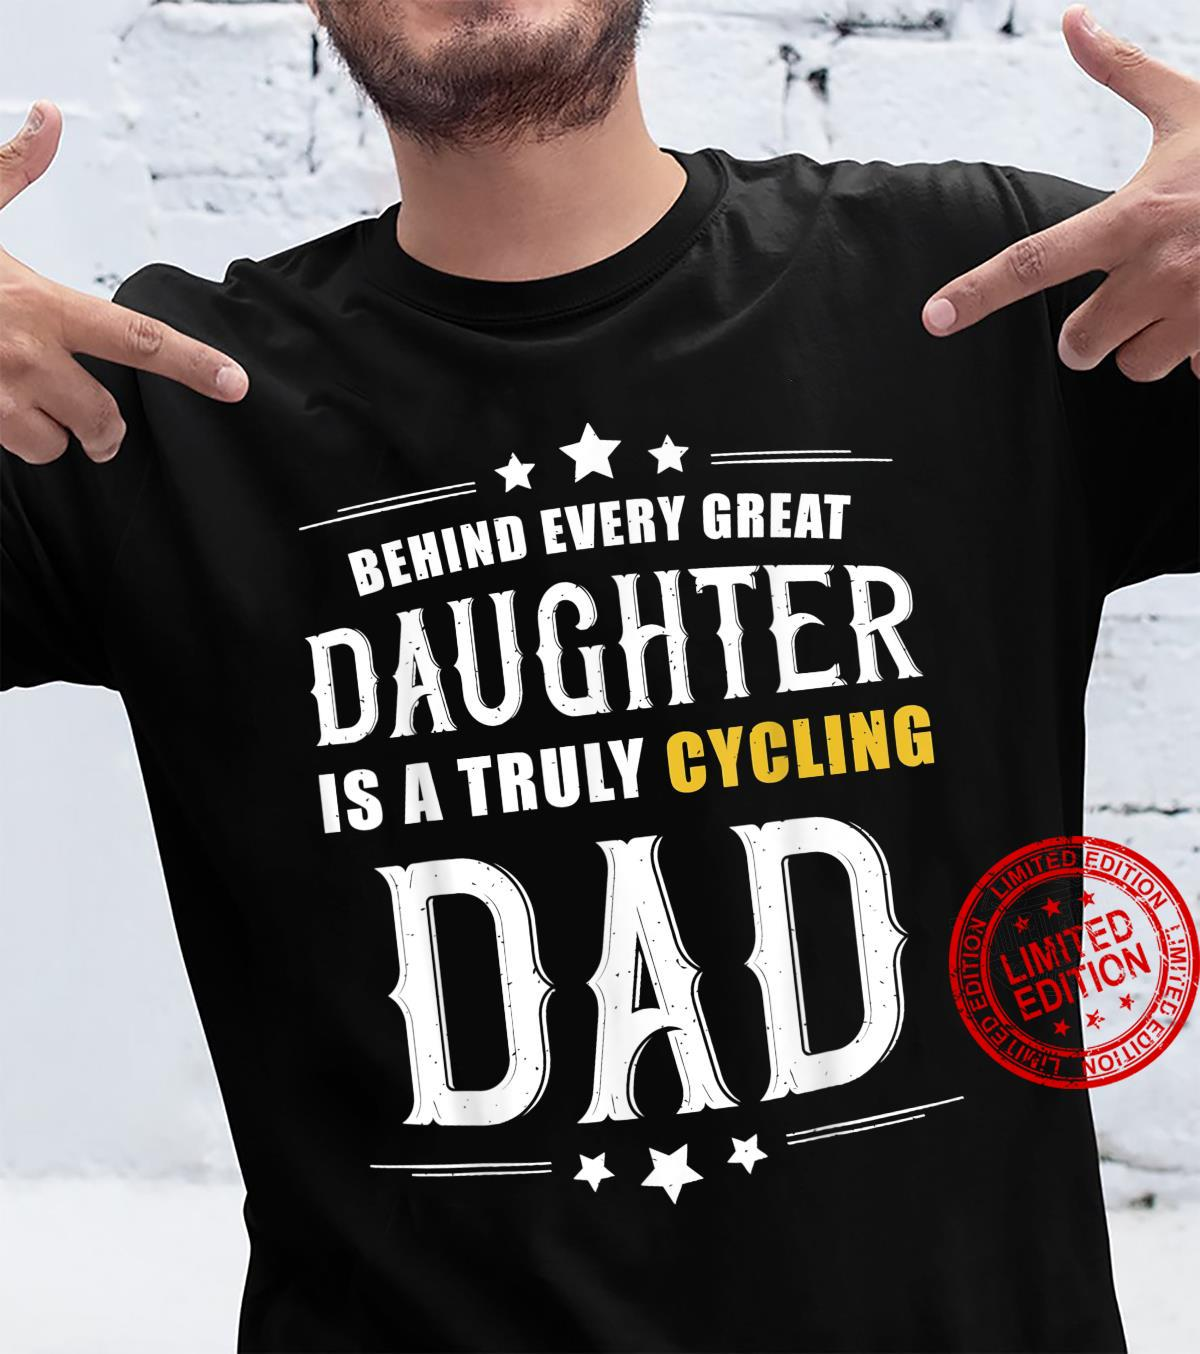 Behind Every Great Daughter Is A Truly Cycling Dad Shirt